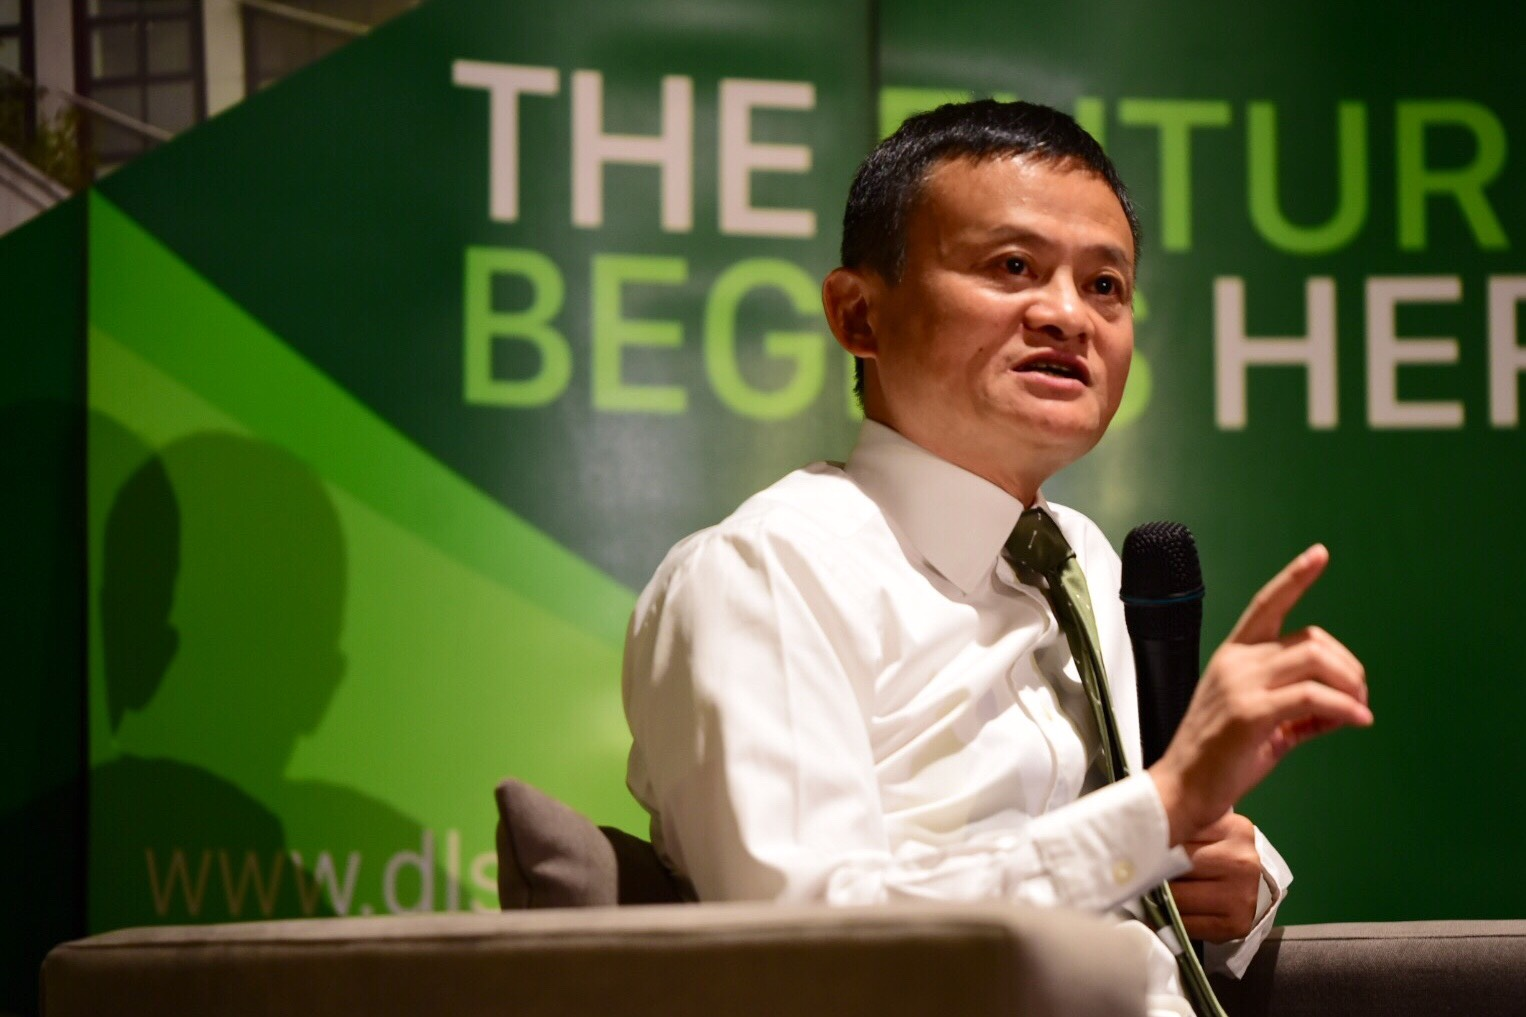 SEIZING OPPORTUNITIES. Alibaba Group founder and executive chairman Jack Ma discusses how to turn problems into advantages in a dialogue with students at De La Salle University on October 25, 2017. Photo by Alecs Ongcal/Rappler